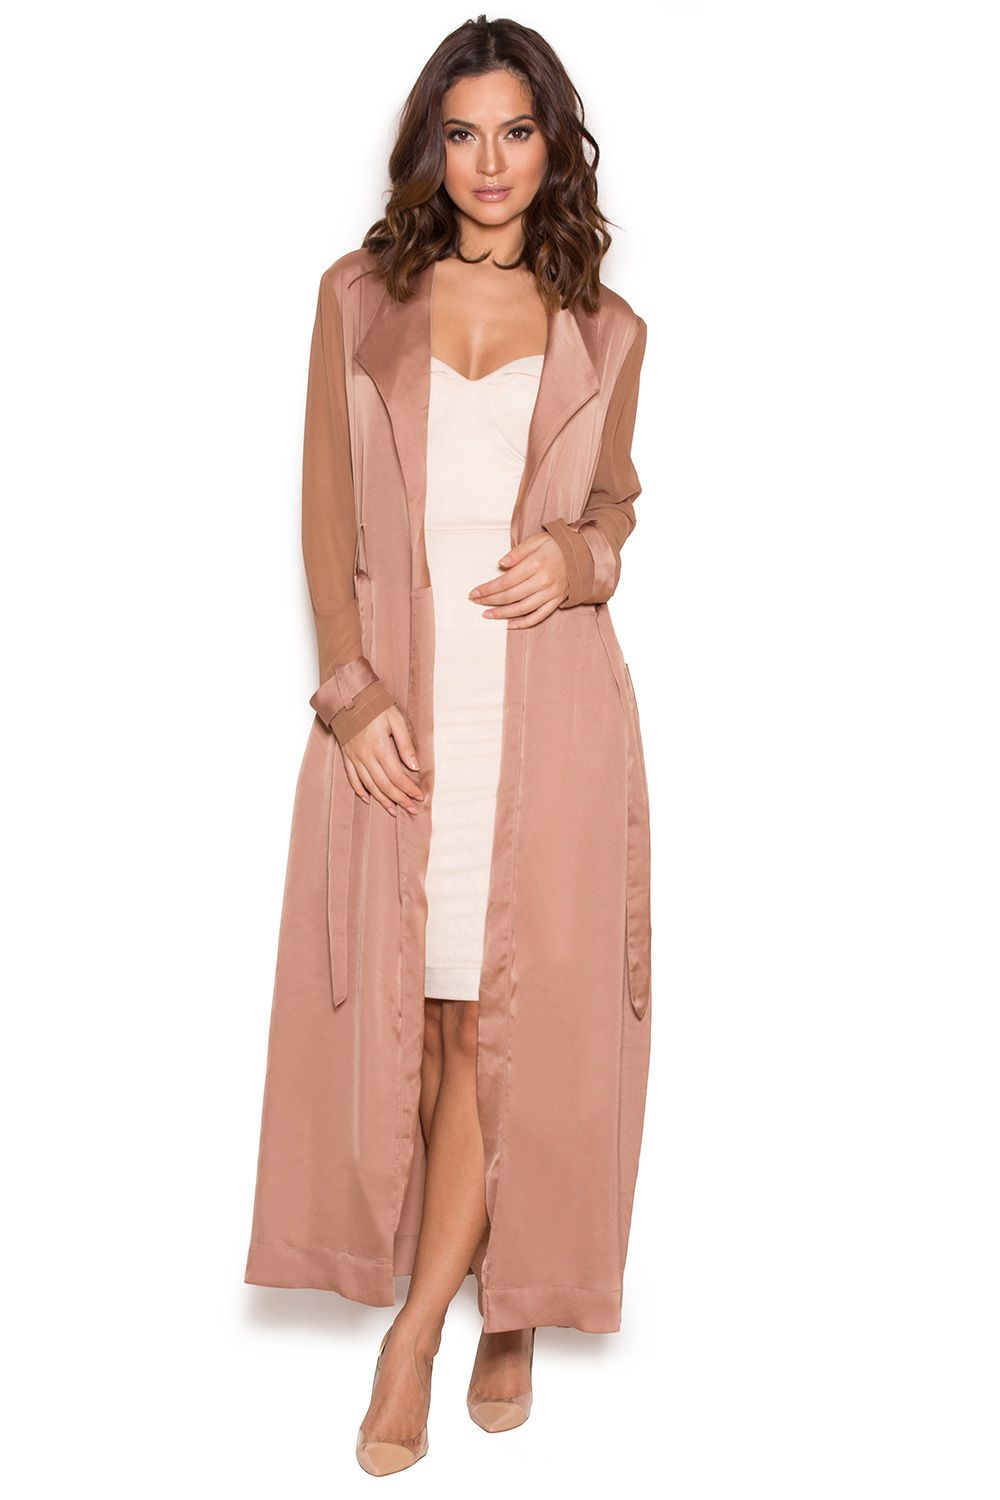 3d234a8d321 Clothing   Jackets    Coryn  Rose Gold Silky Duster Coat